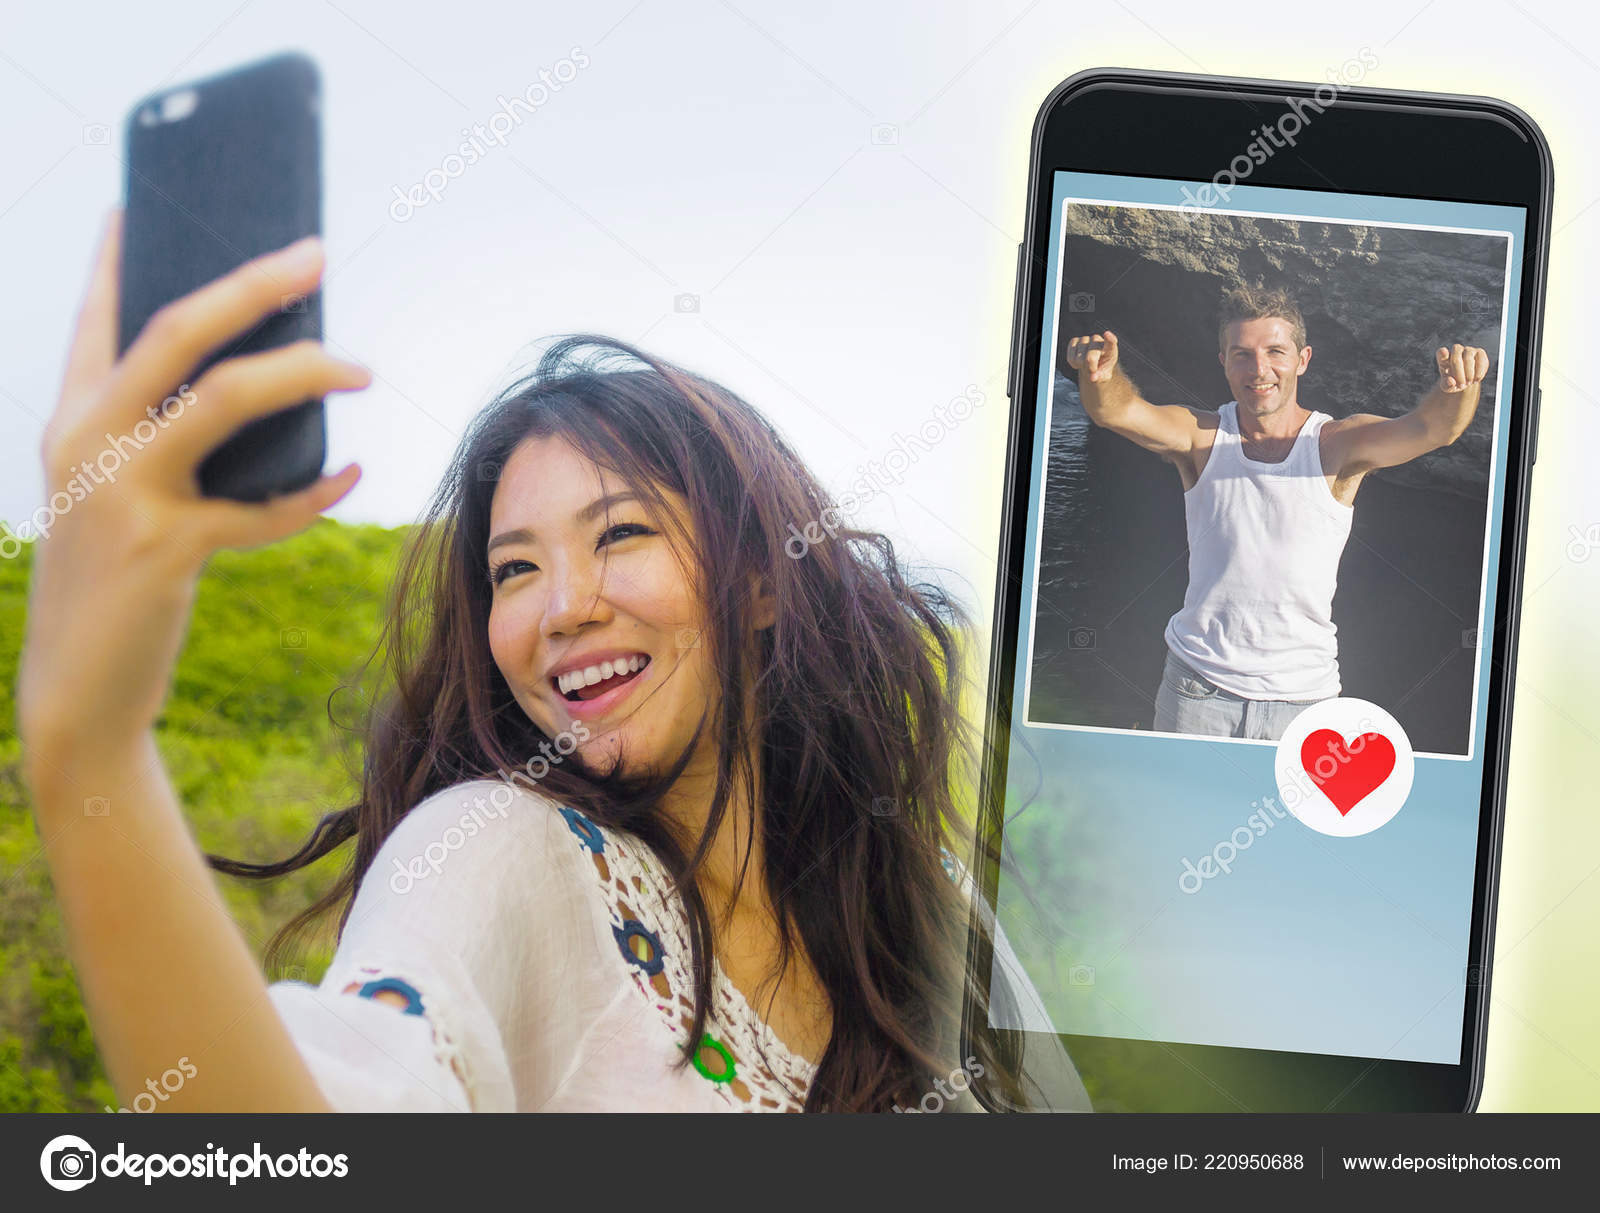 Chinese dating apps